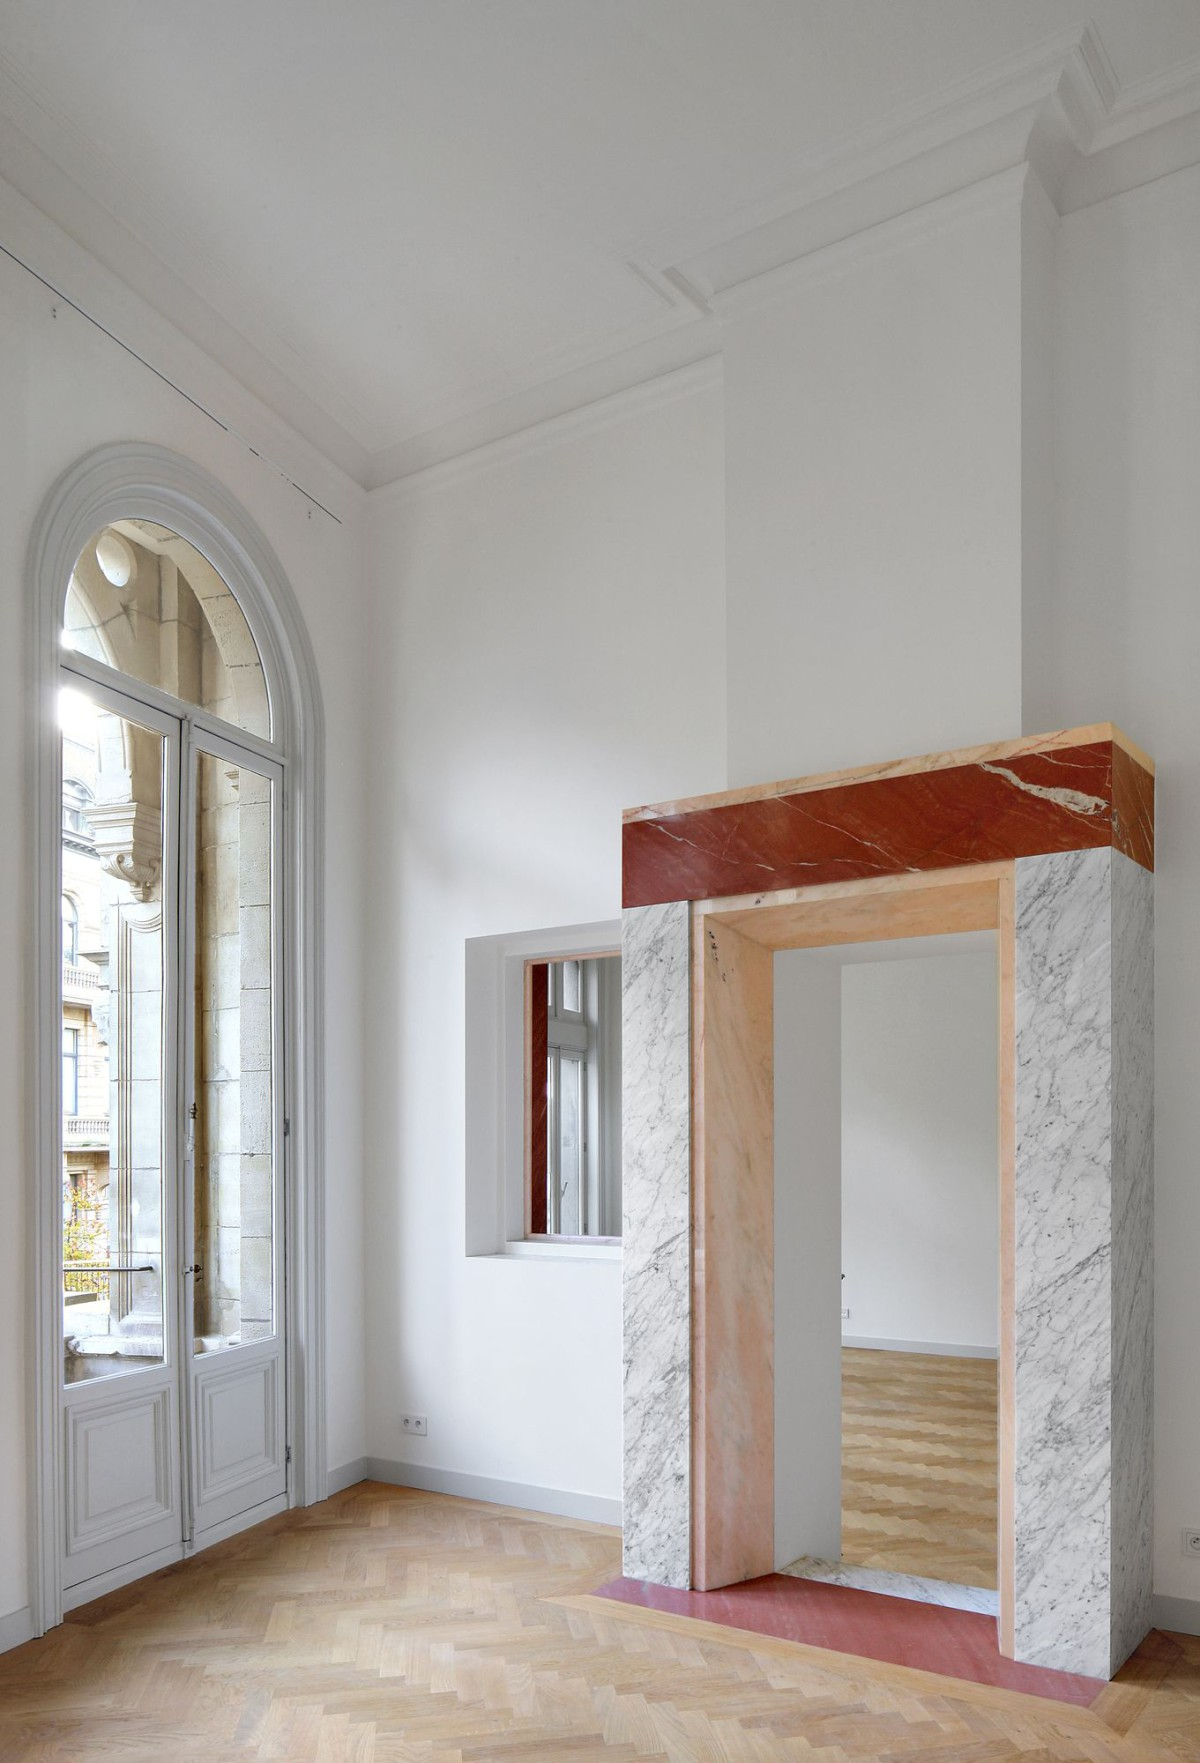 Bovenbouw Architectuur . Refurbishment of 3 historical buildings . Antwerp (15)